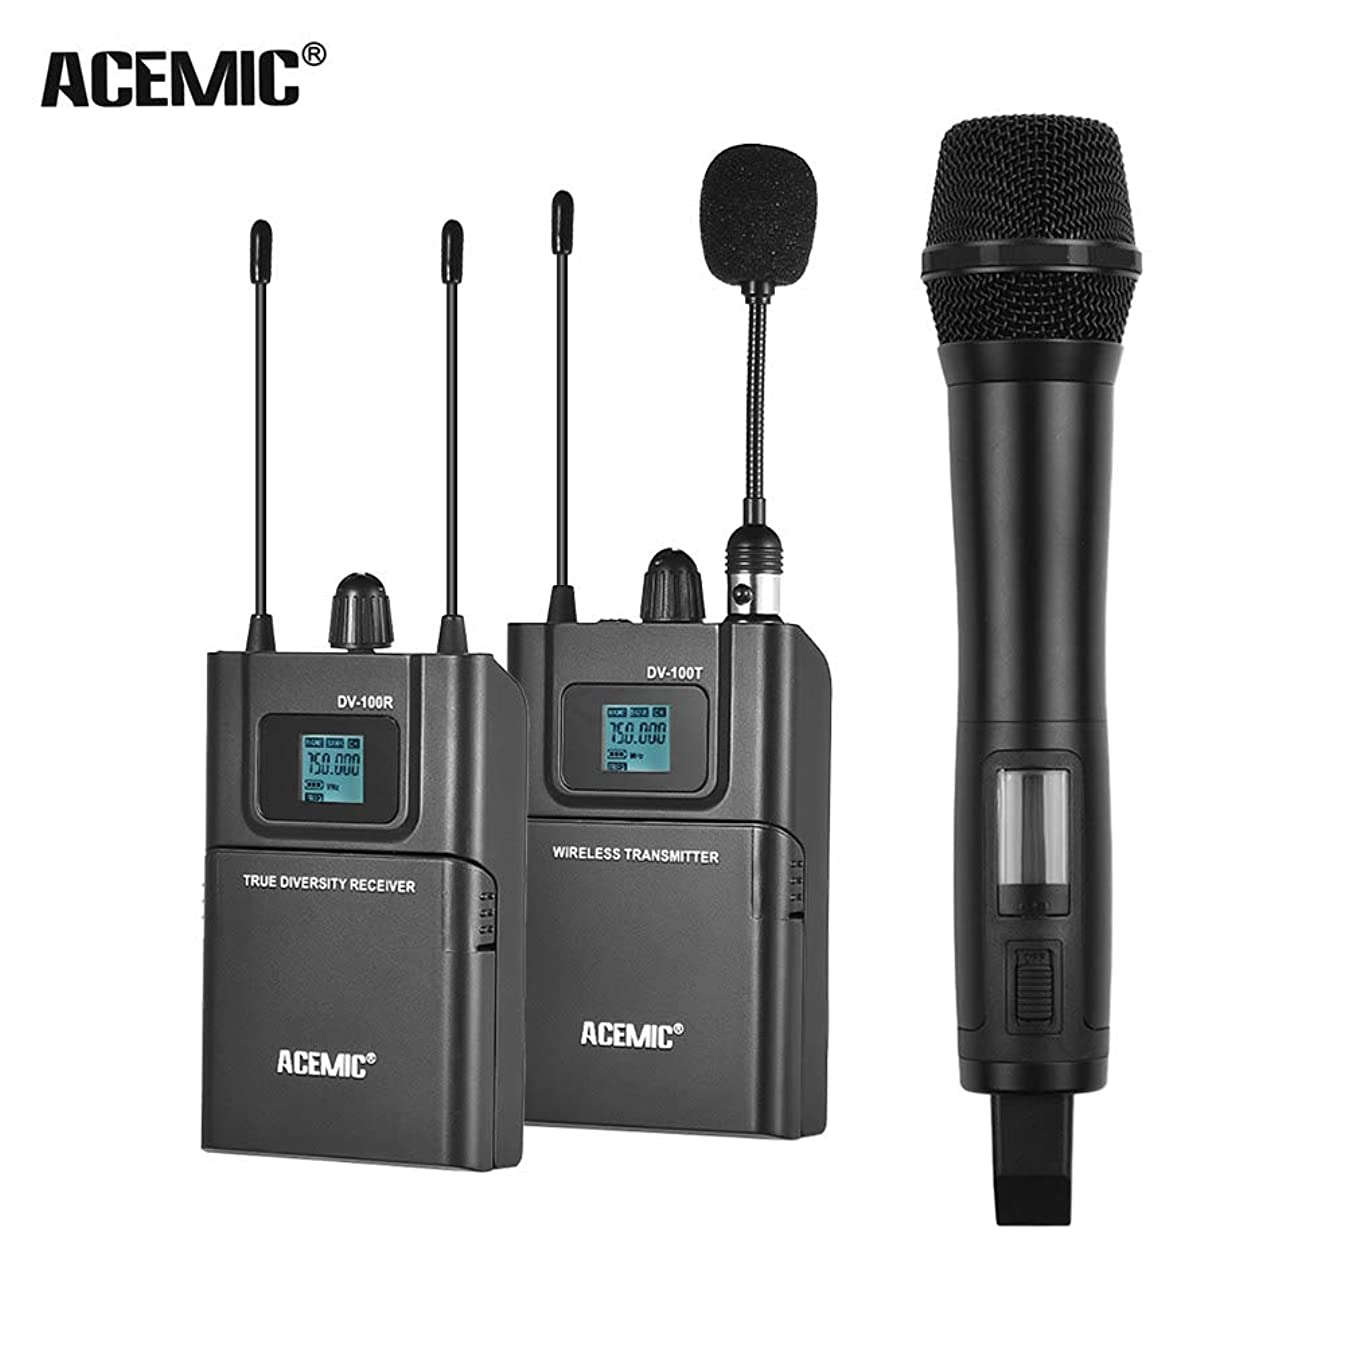 TPOTOO ACEMIC DV100SET Dual Channel UHF Wireless Microphone System LCD Display 80M Effective Range with 1 Transmitter & 1 Receiver & 1 Handheld Microphone for Canon Nikon Sony DSLR Camera Camcorder